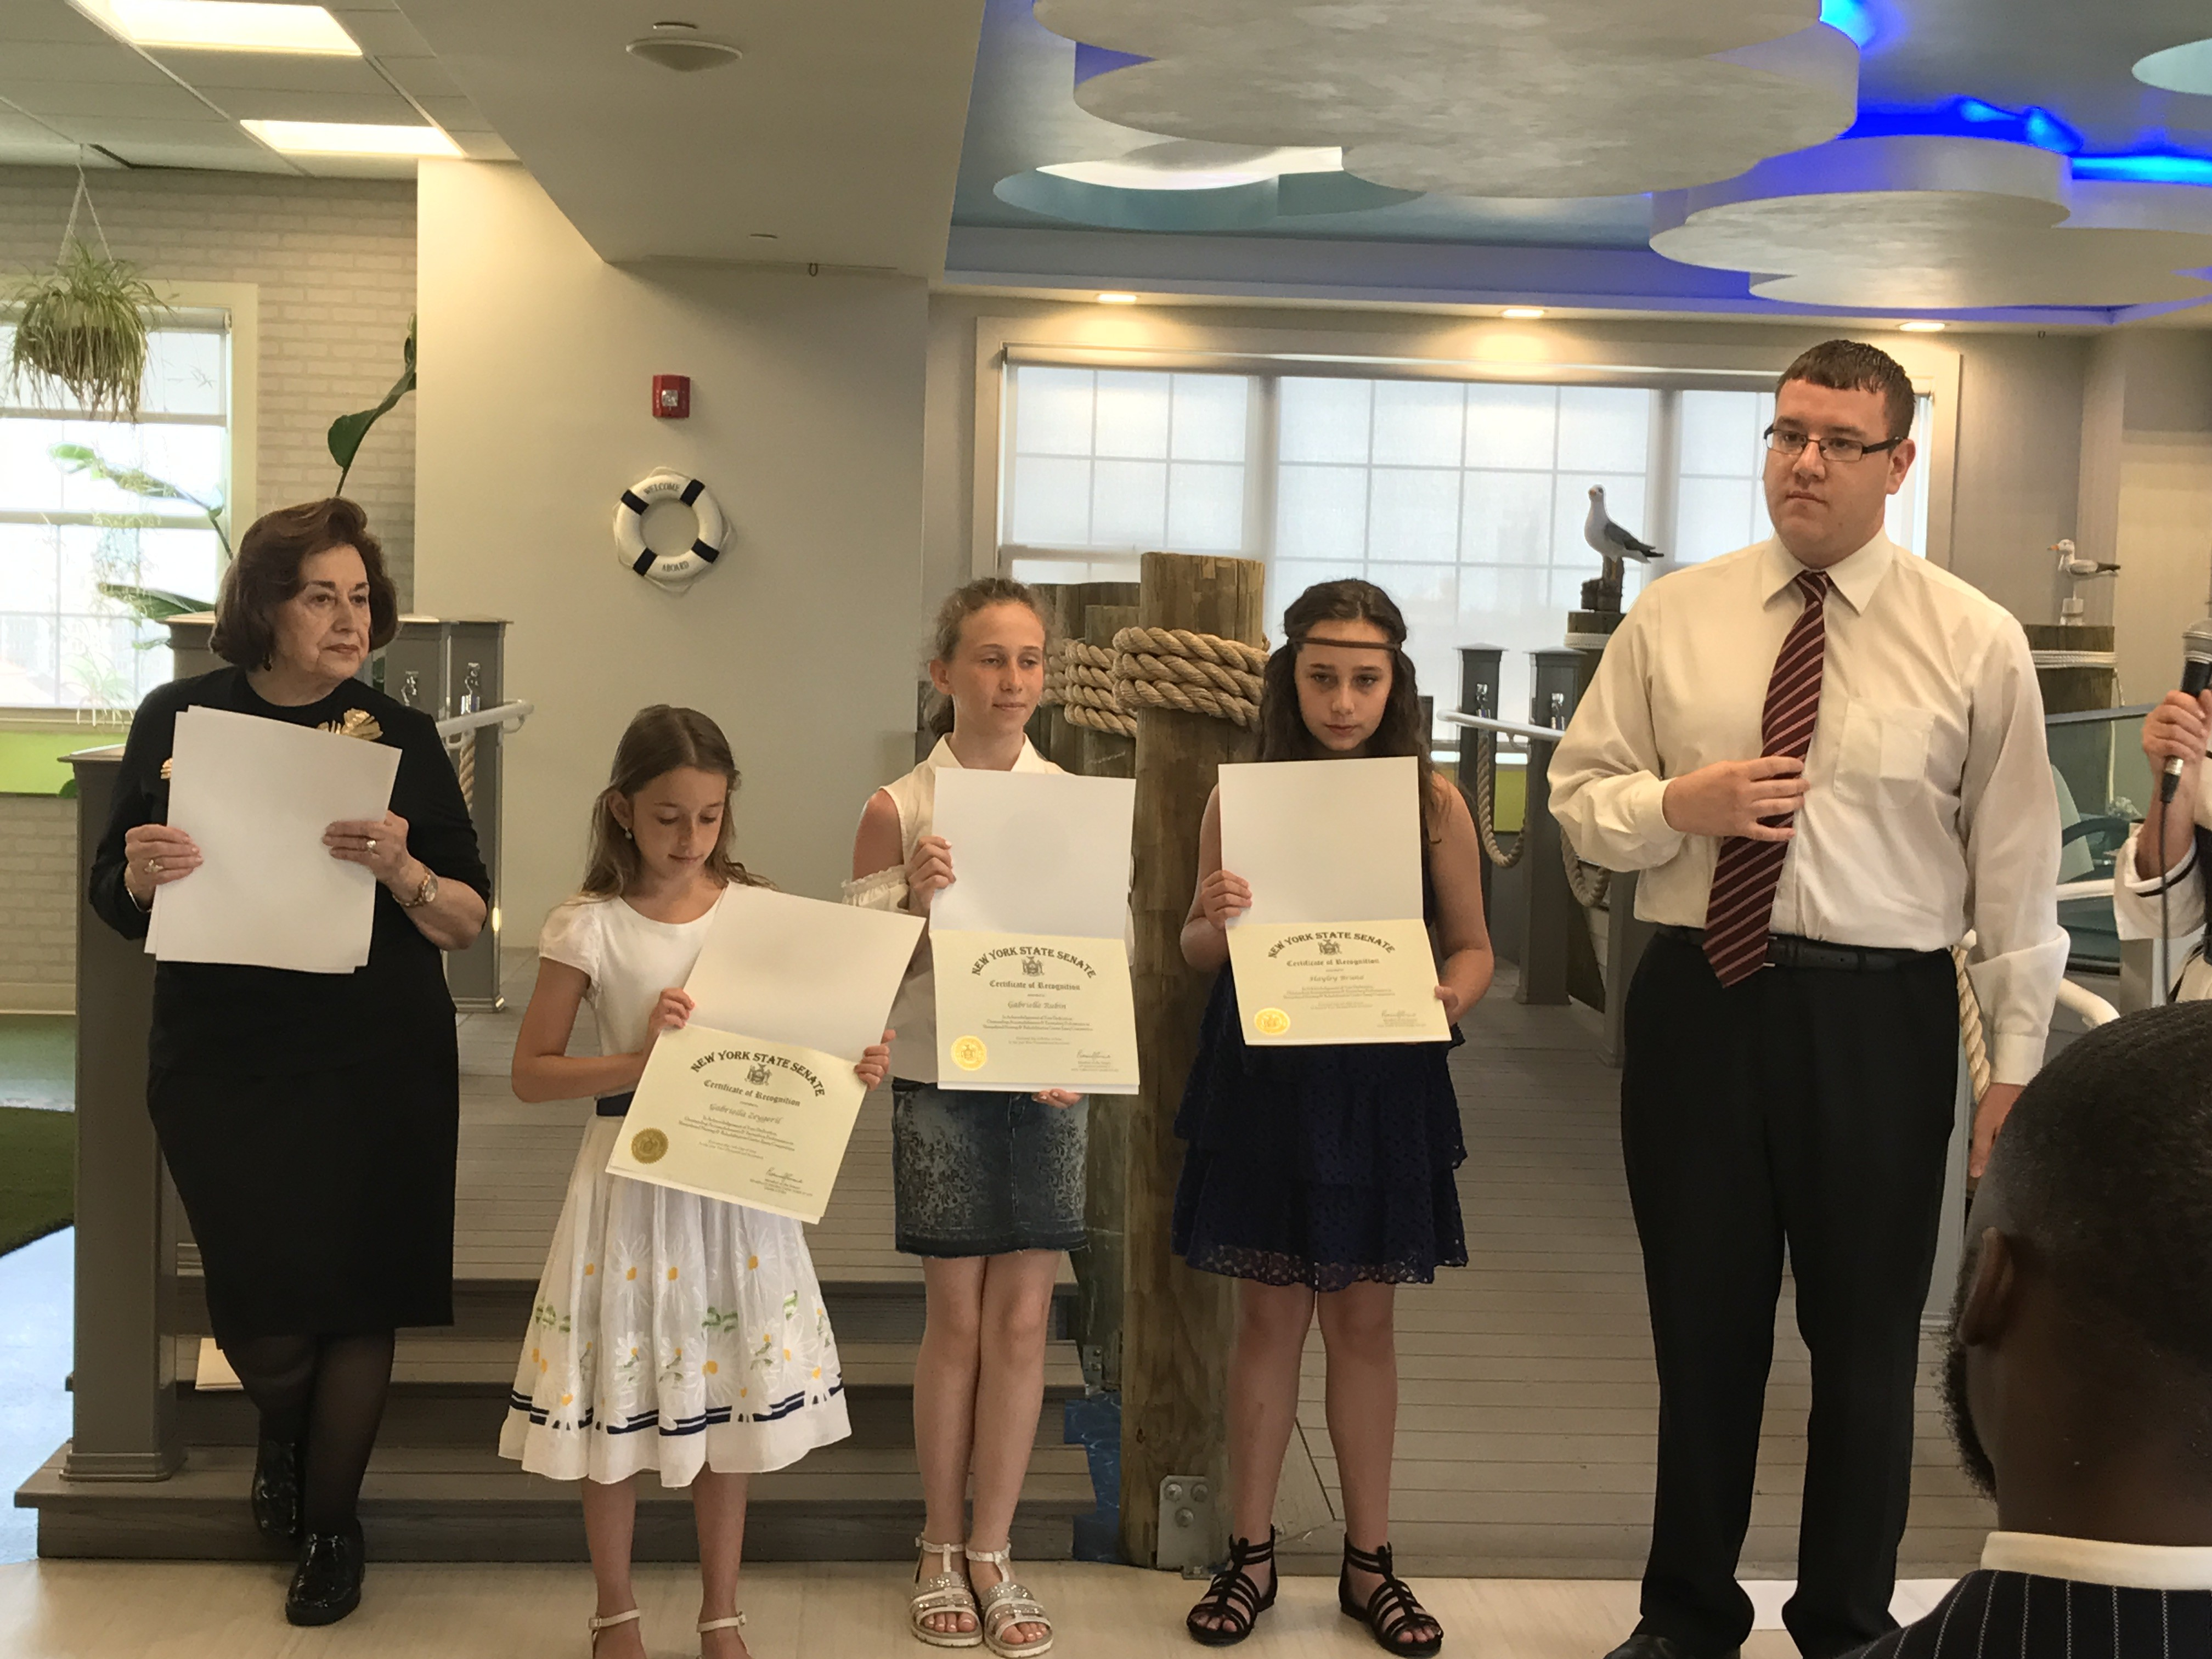 community essay awards ceremony sheepshead nursing news  essay winners joined by mrs olga lipschitz and mitchell partnow chief of staff from